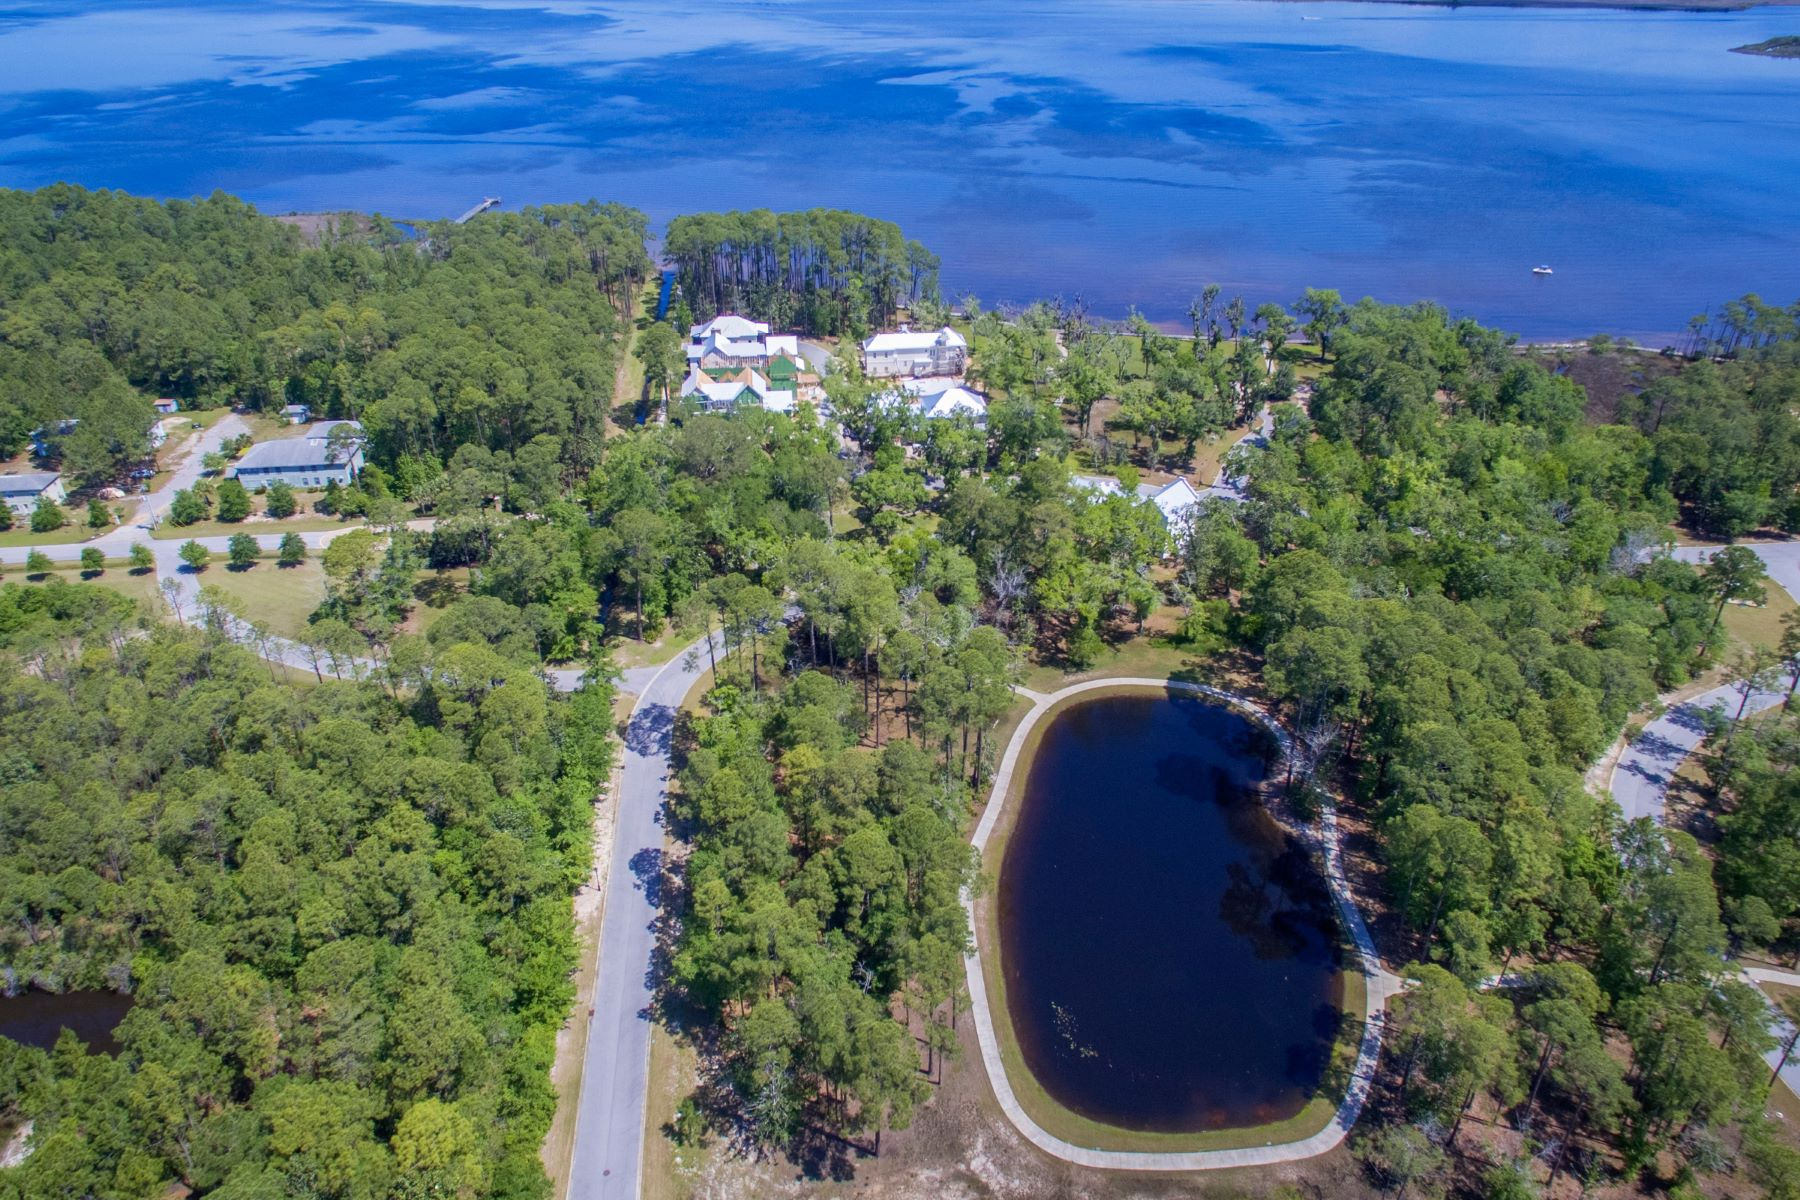 Land for Sale at WOODED LOT WITH SERENE BAY VIEWS AT CHURCHILL OAKS Lot 33 Tyler, Santa Rosa Beach, Florida, 32459 United States